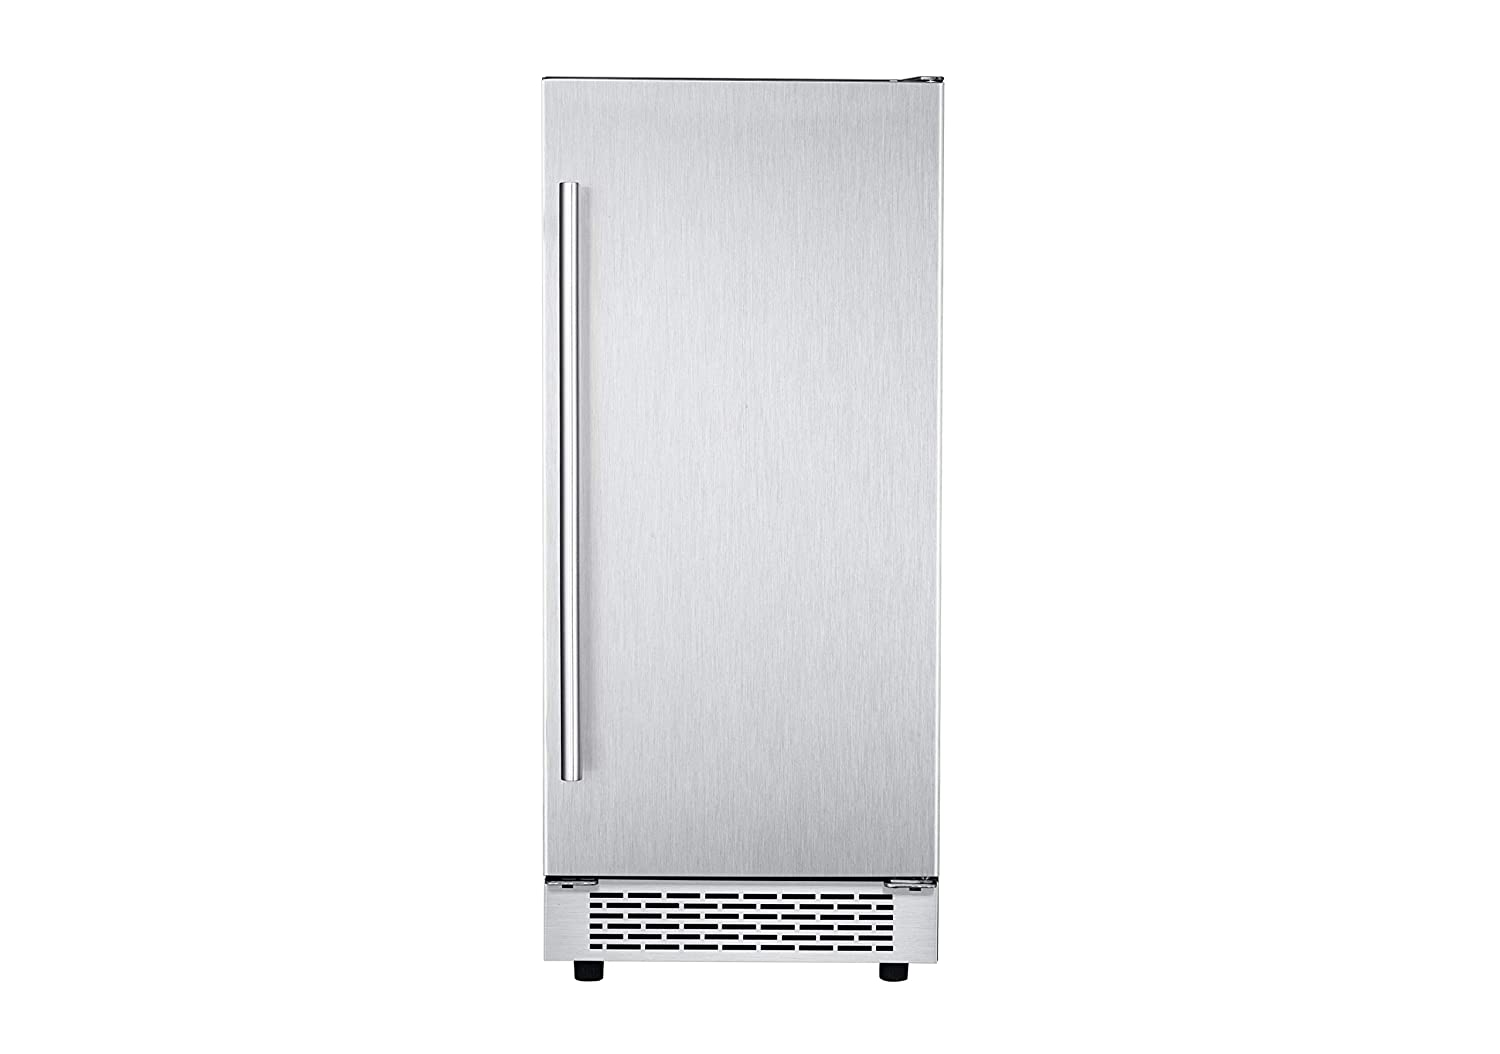 Hanover HIM60701-5SS The Vault 15 in. Stainless Steel Reversible Door and Touch Controls Undercounter Ice Maker, Pro-Handle